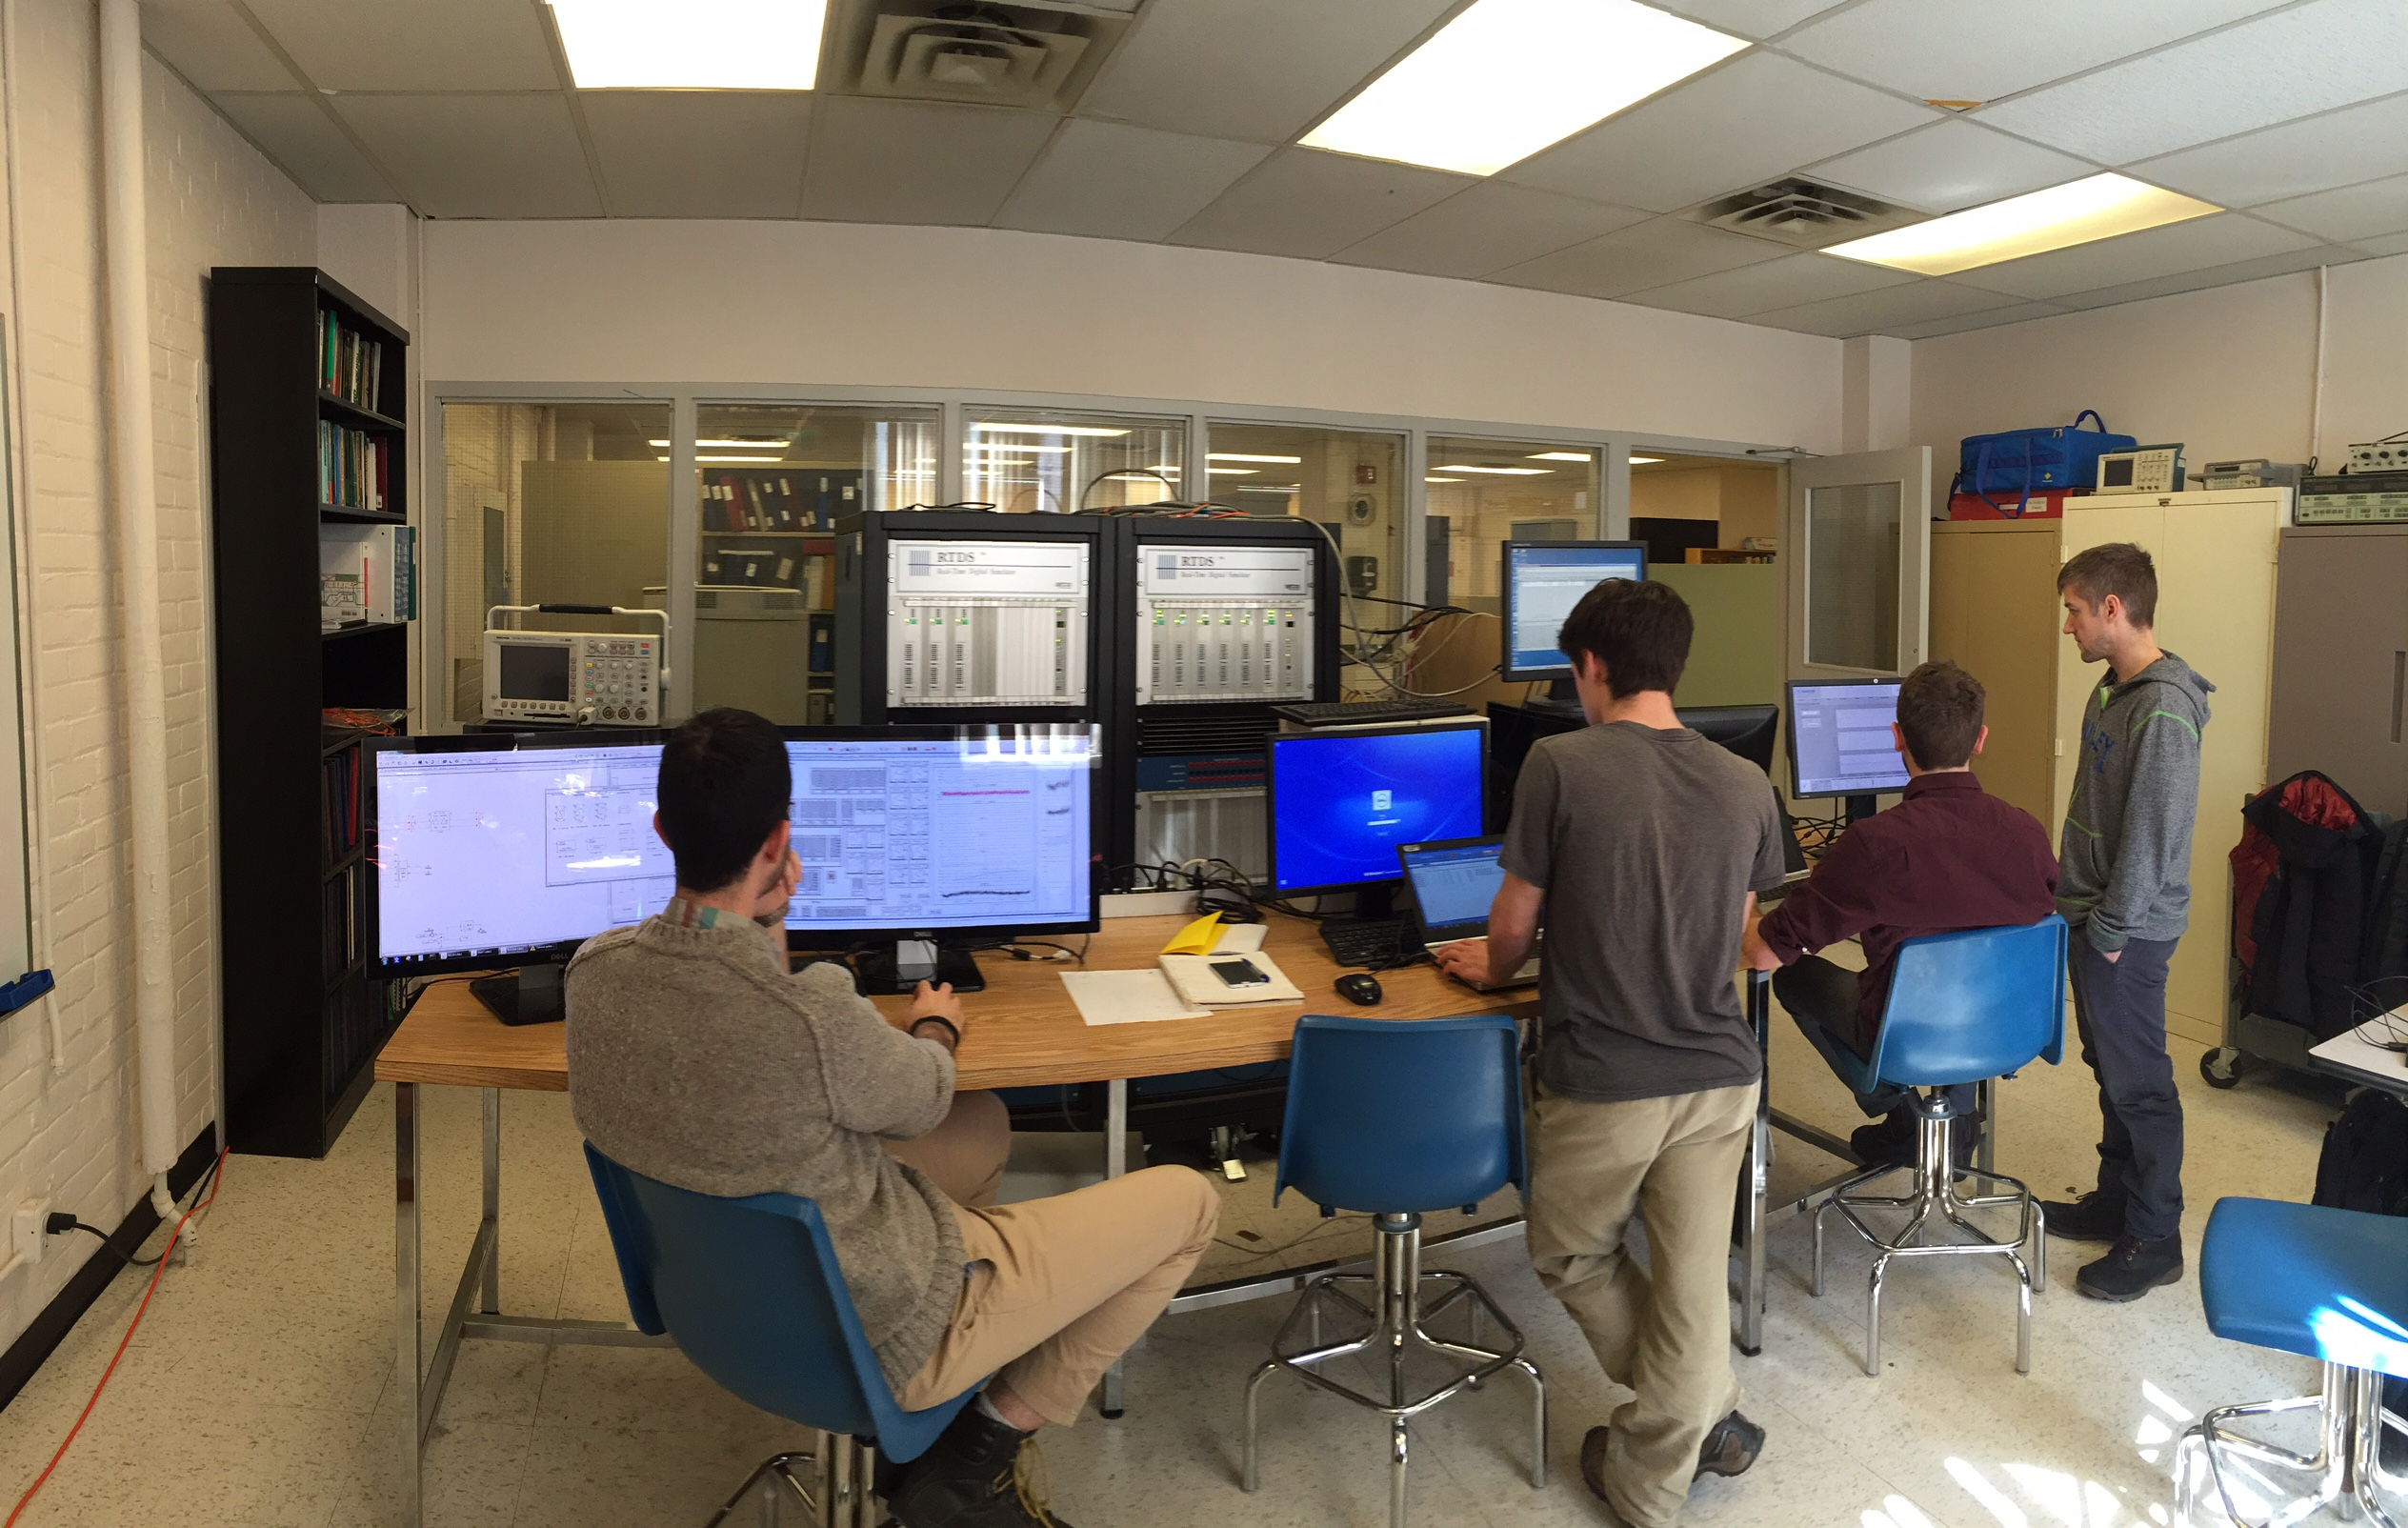 Test facility environment with 4 engineers from Hatch working at computer terminals connected to real time simulator and microgrid controls hardware